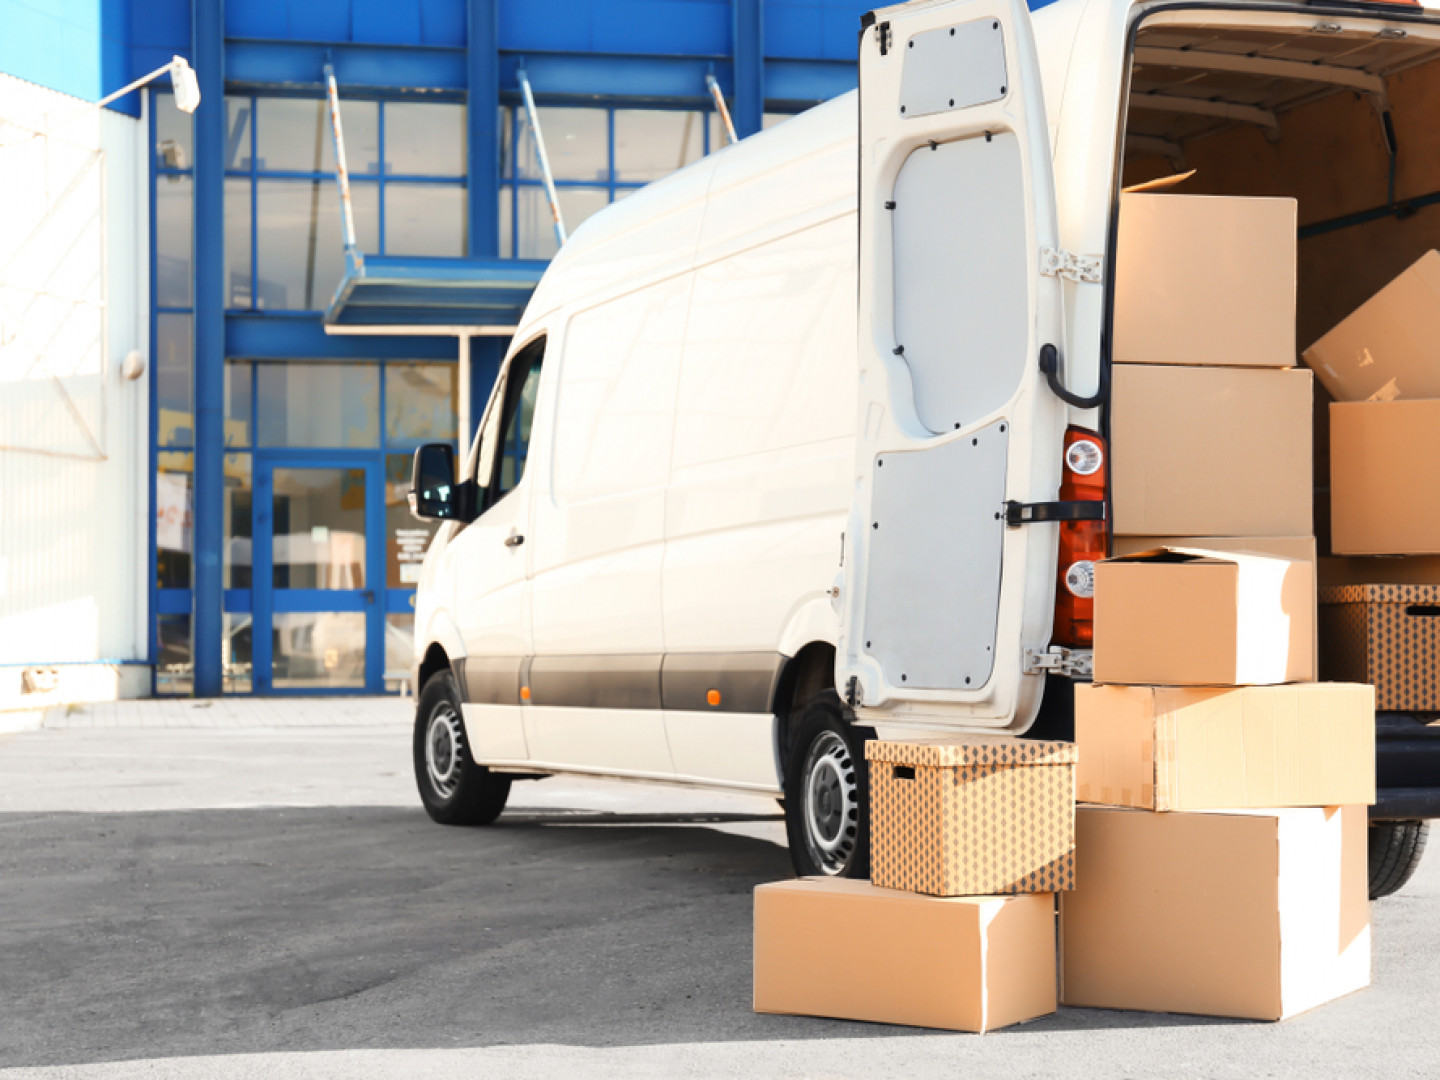 Count on us to manage inventory and packing